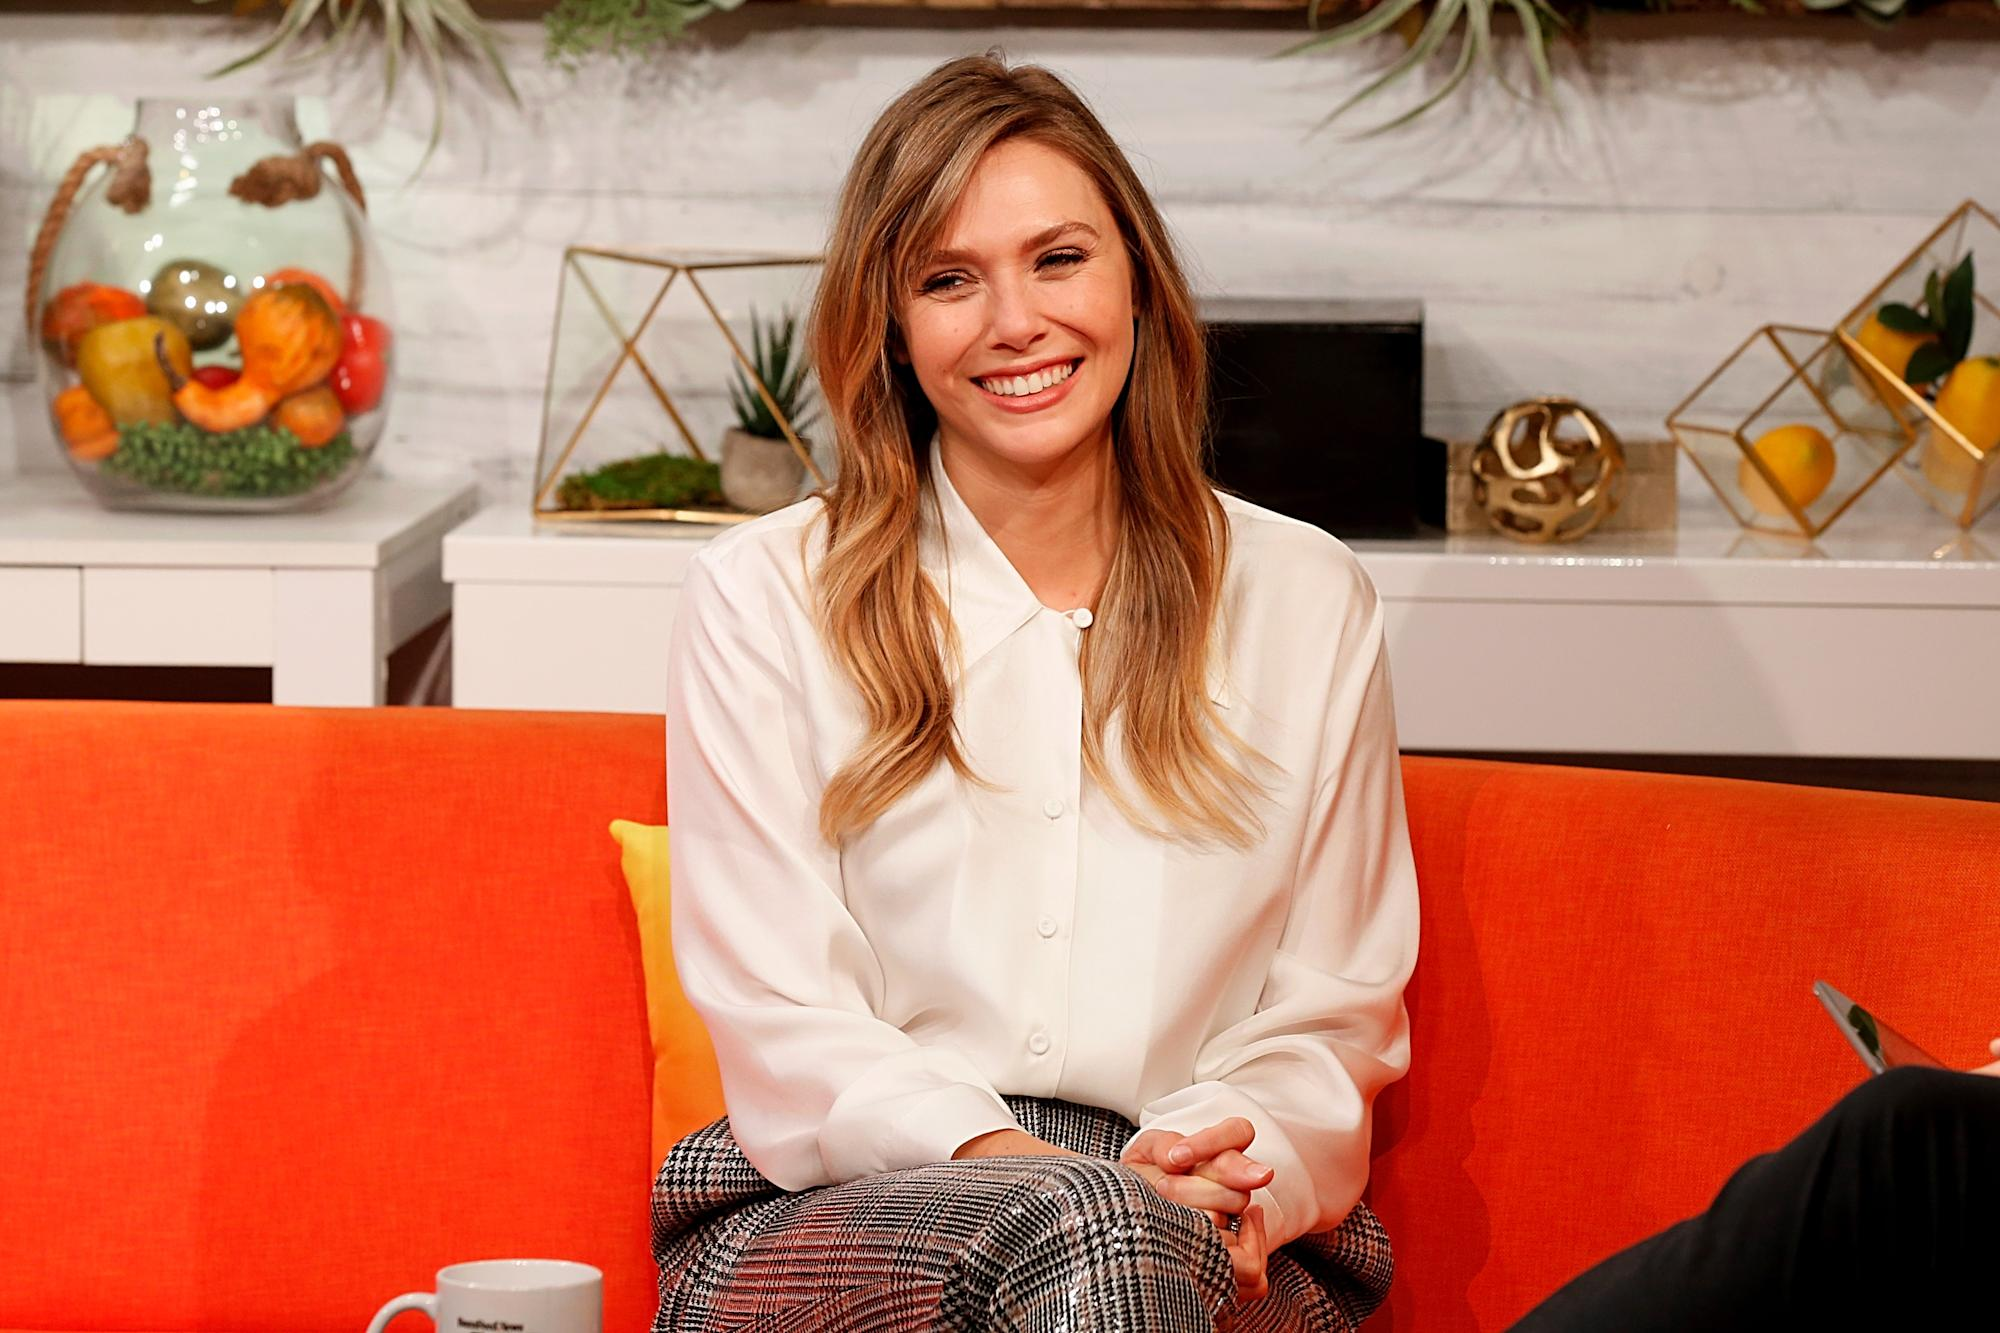 Elizabeth Olsen says she had an 'awful' audition for 'Game Of Thrones'